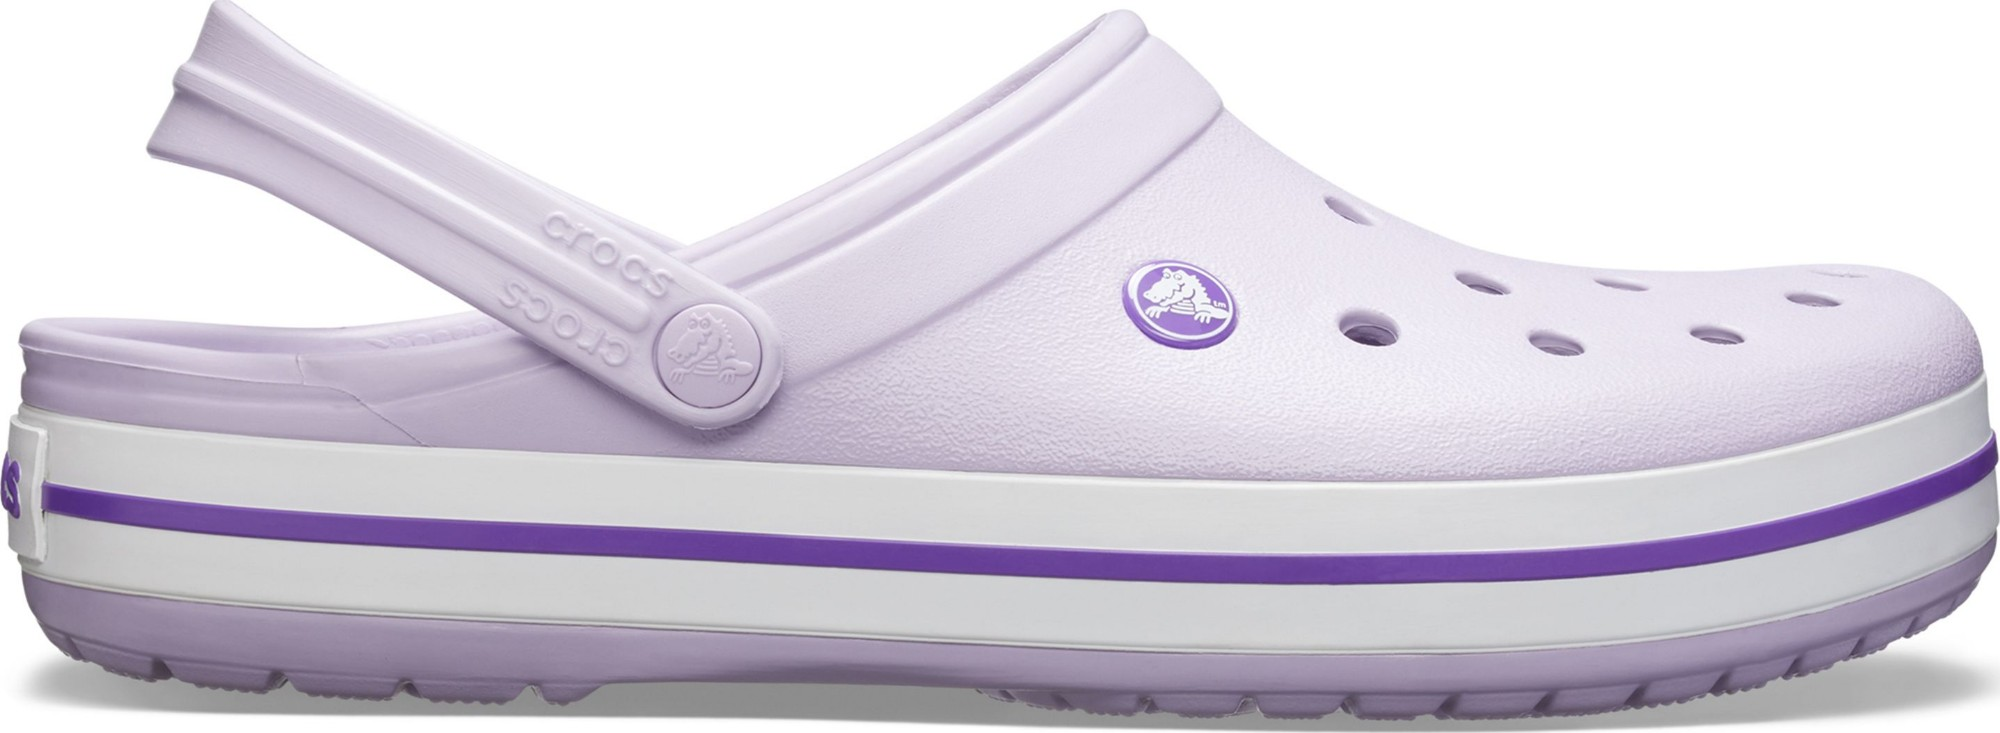 Crocs™ Crocband™ Lavender/Purple 42,5